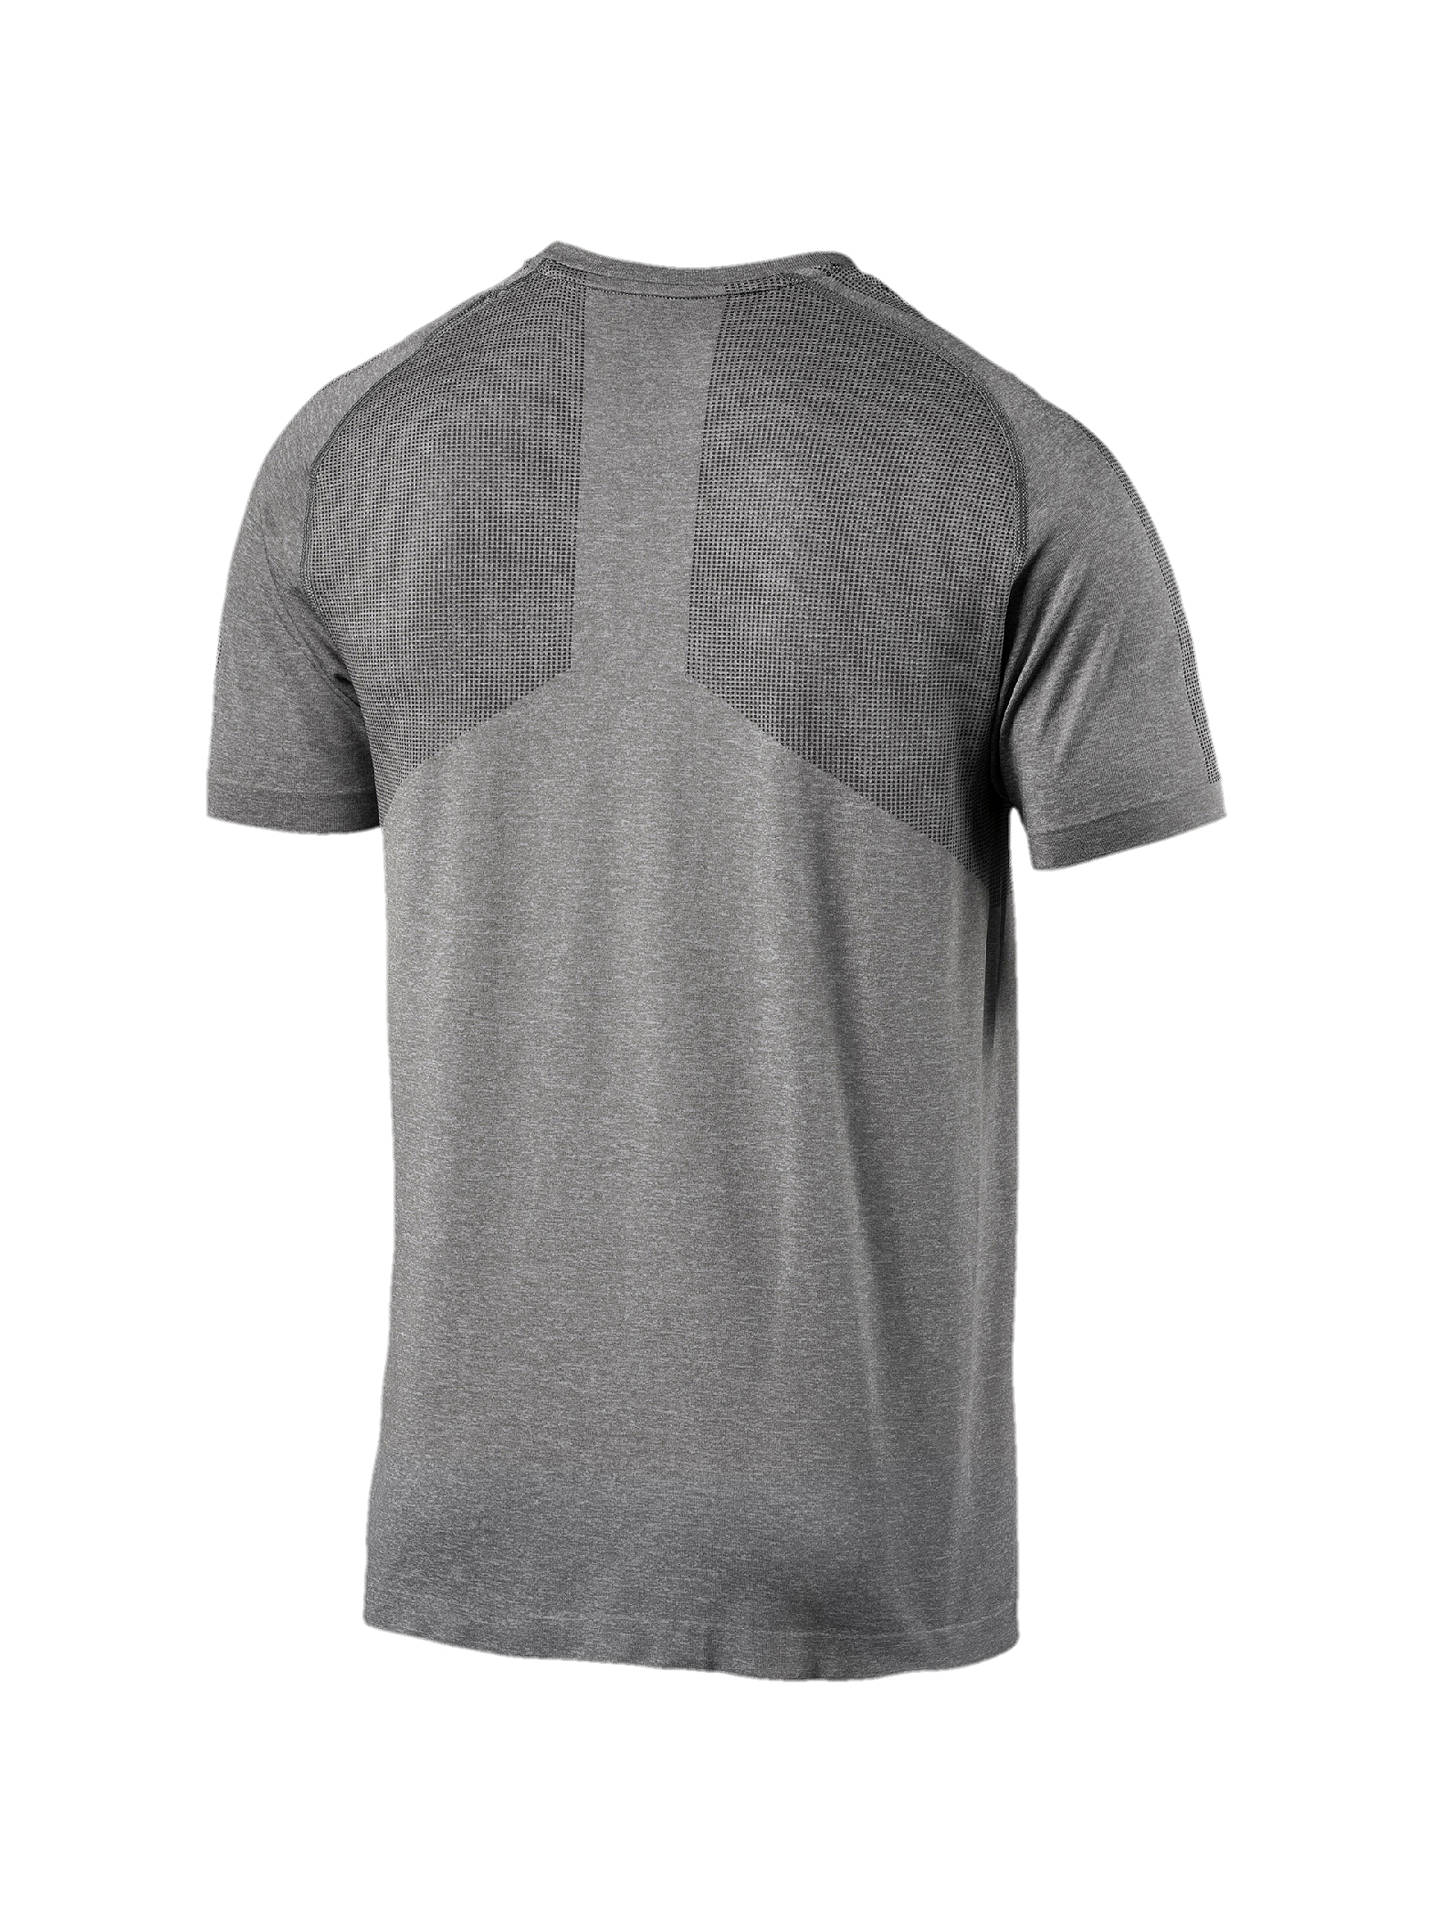 BuyPUMA evoKNIT Basic Training T-Shirt, Medium Grey Heather, S Online at johnlewis.com